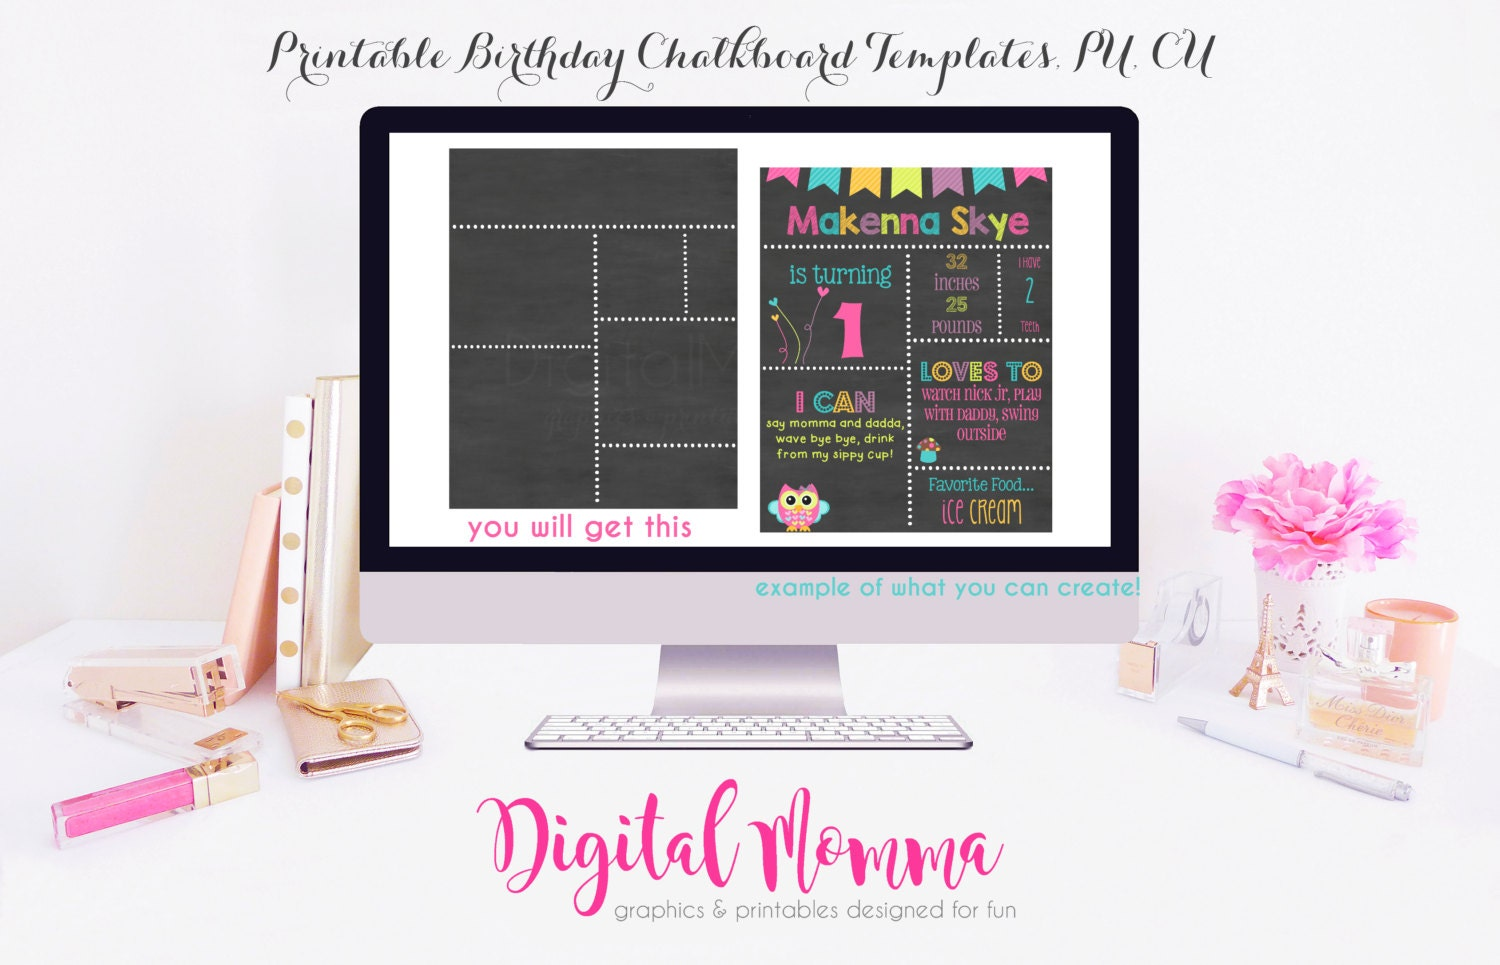 Printable diy blank birthday chalkboard template high resolution jpg file personal for 1st birthday chalkboard sign template free